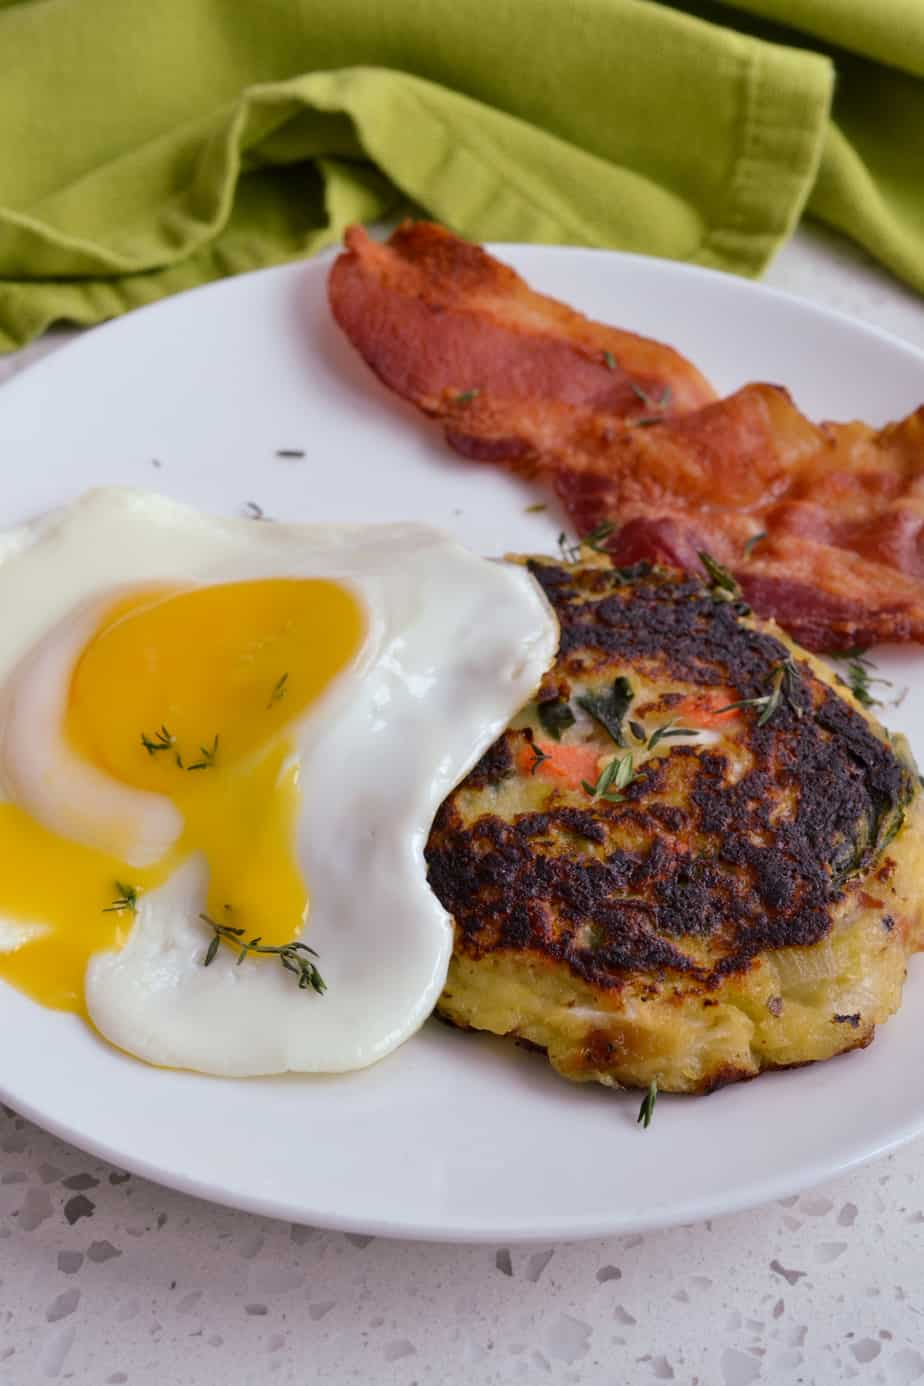 Top the potato pancakes with a sunny side up or poached egg.